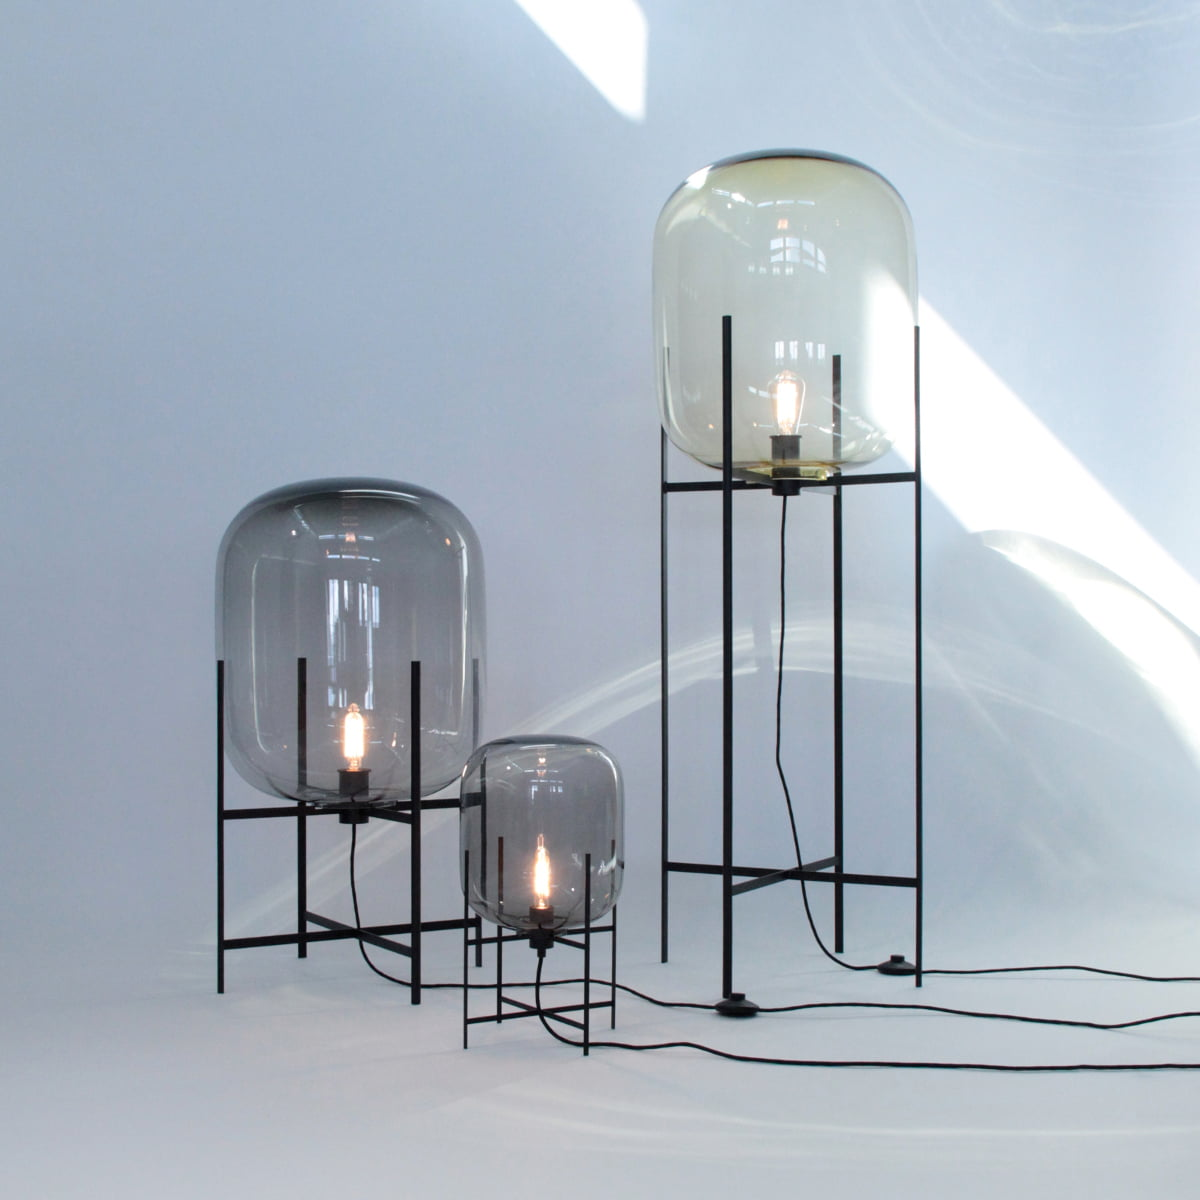 The Large Oda Lamp By Pulpo In The Shop